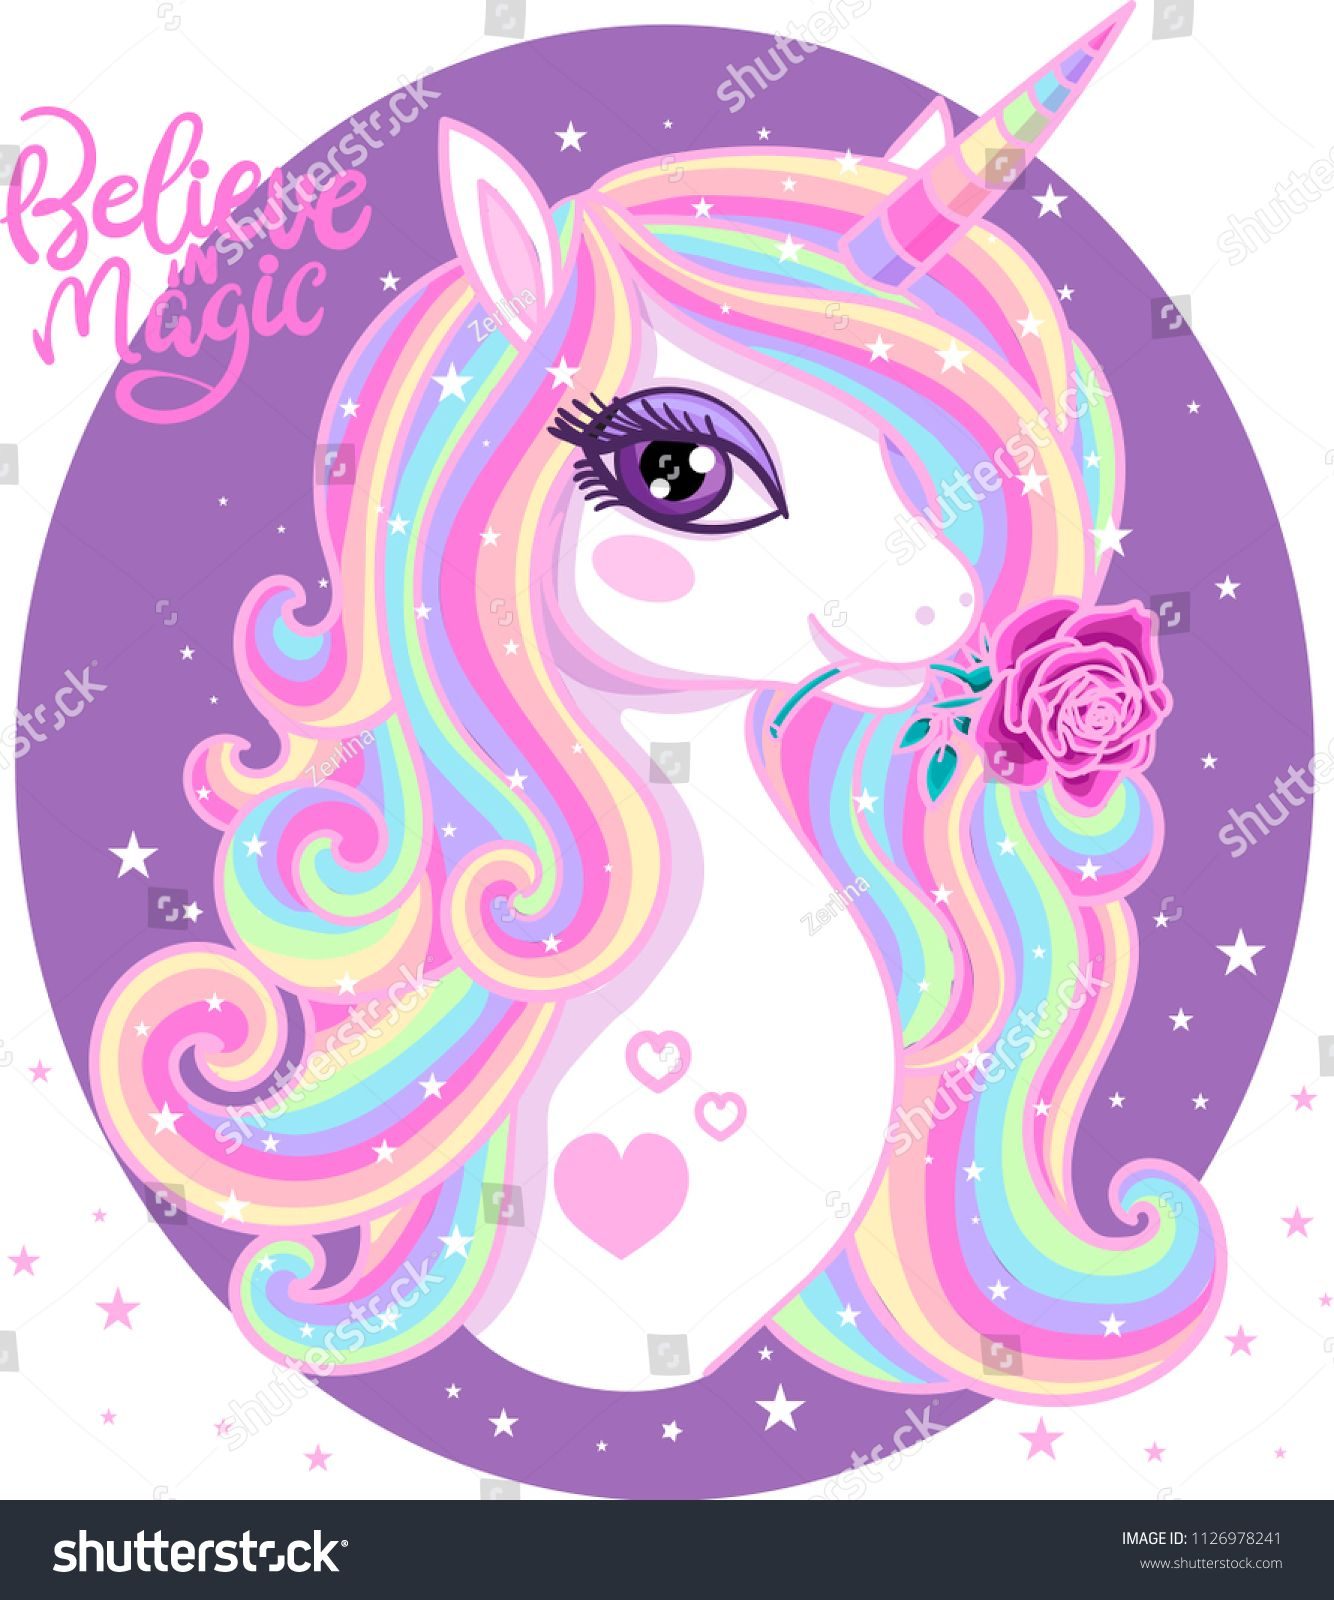 Believe In Magic A Beautiful Rainbow Unicorn With A Rose In The